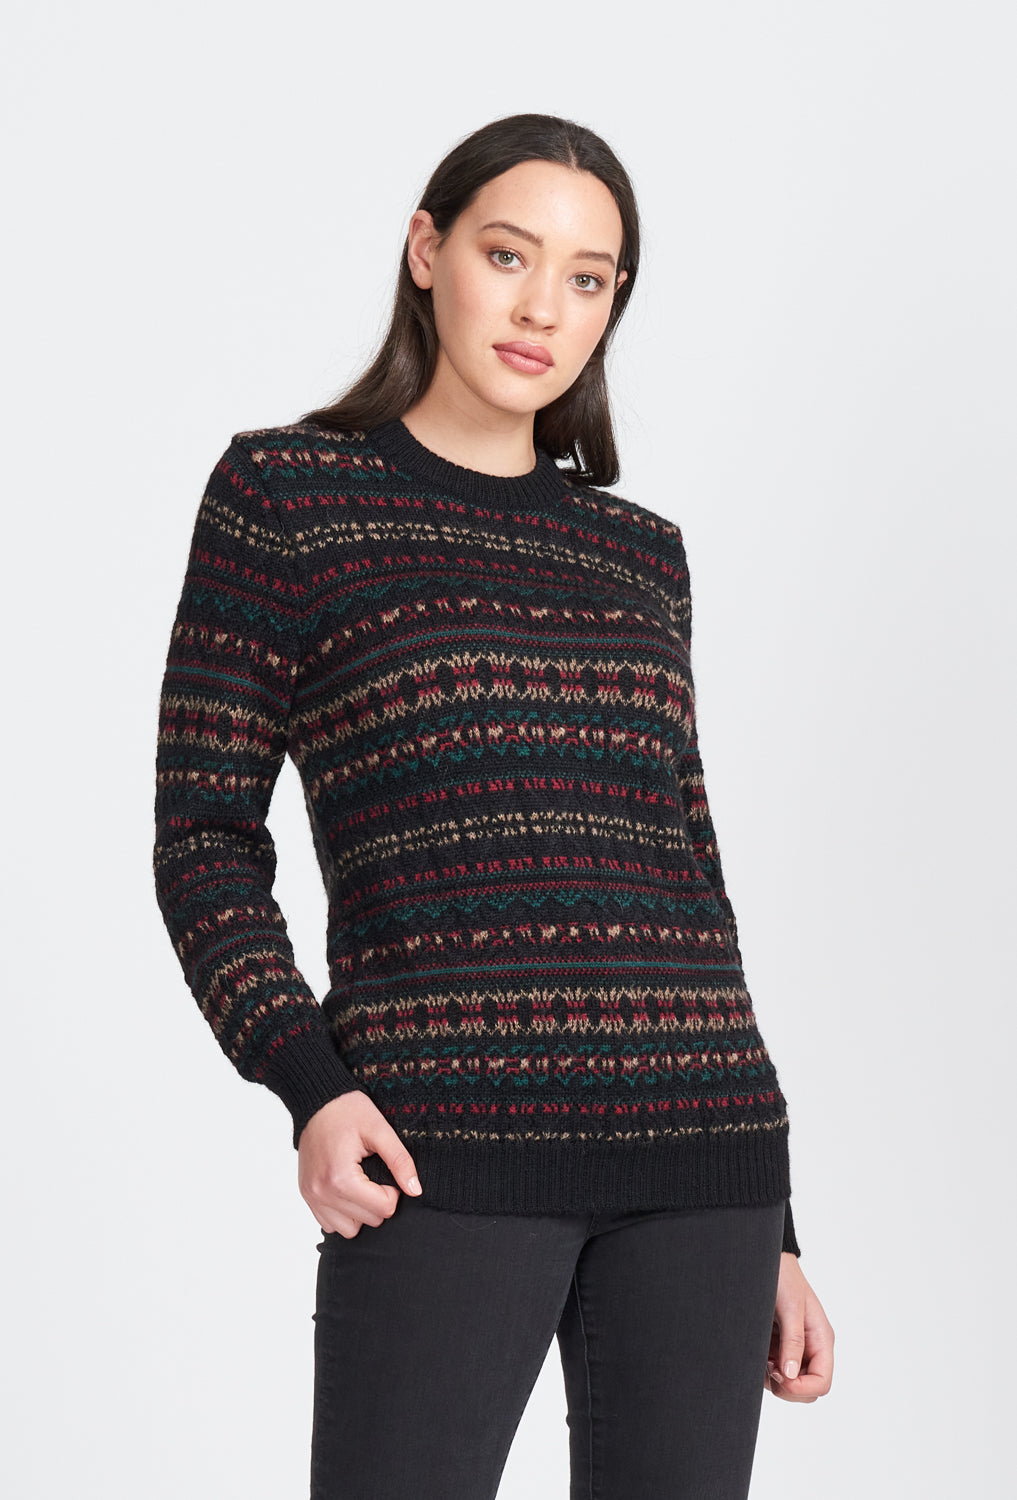 Unisex Jumper. Long sleeve, crew neck, ribbed cuffs and waist band. Fairisle pattern in 100% Alpaca wool.